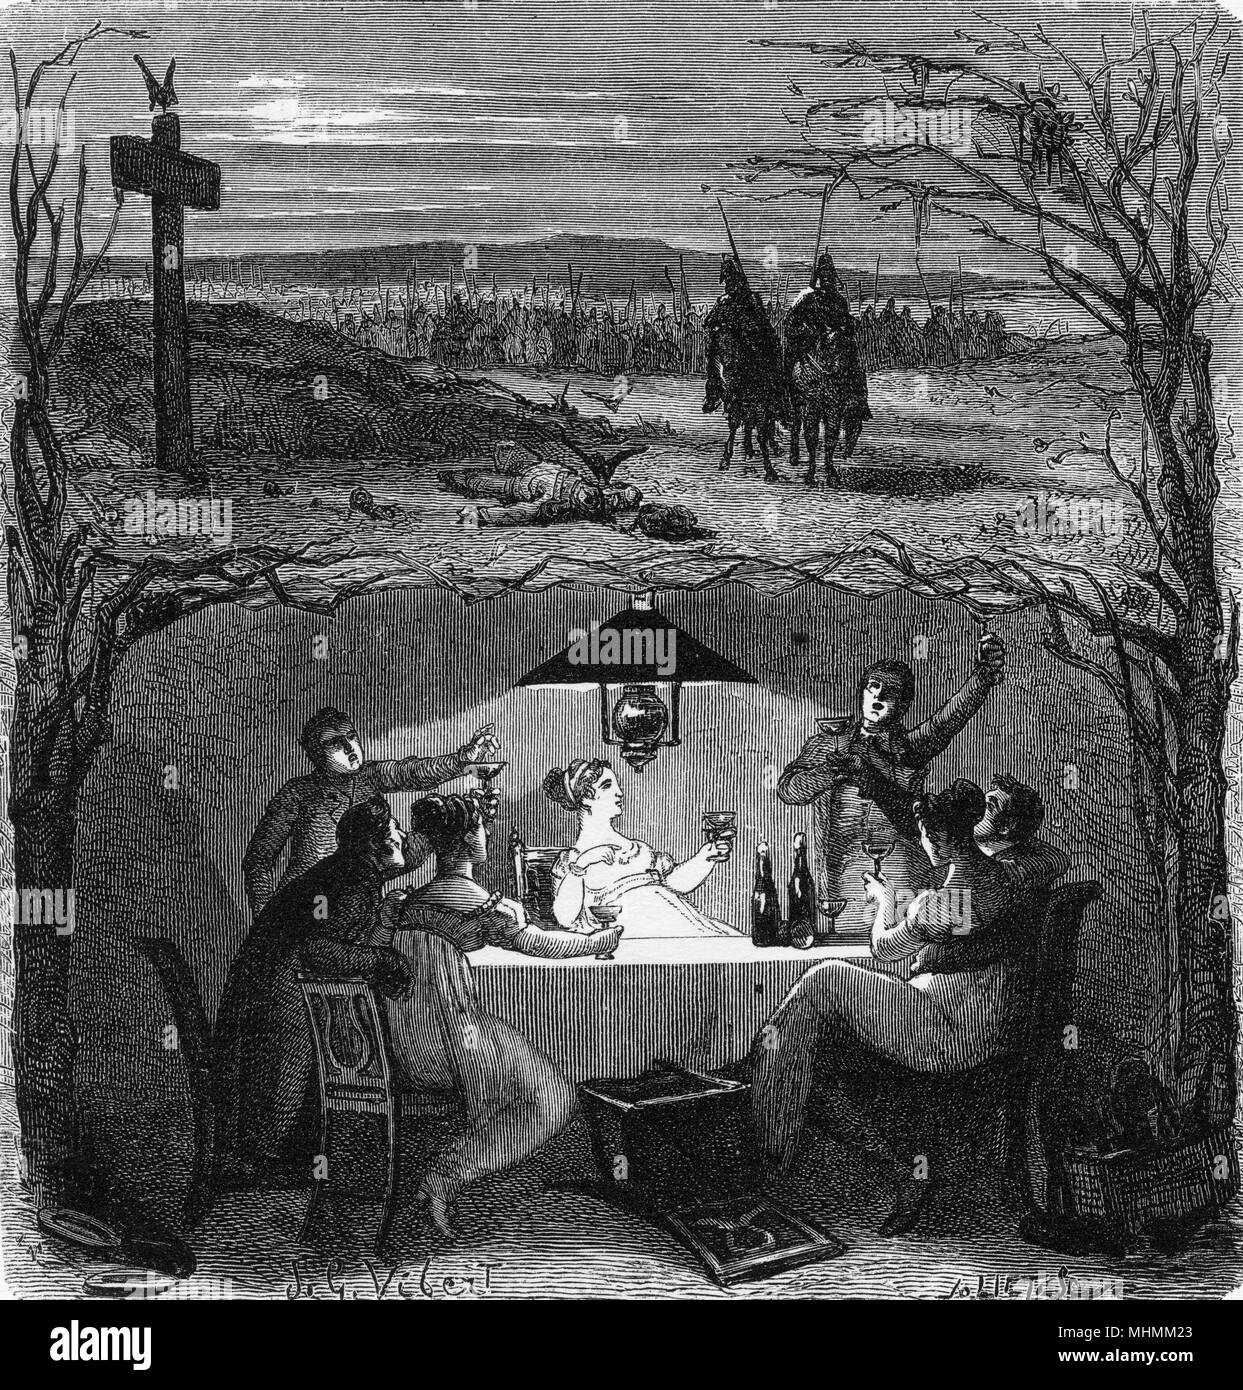 Let's drink today, for tomorrow we may die...       Date: 1866 - Stock Image